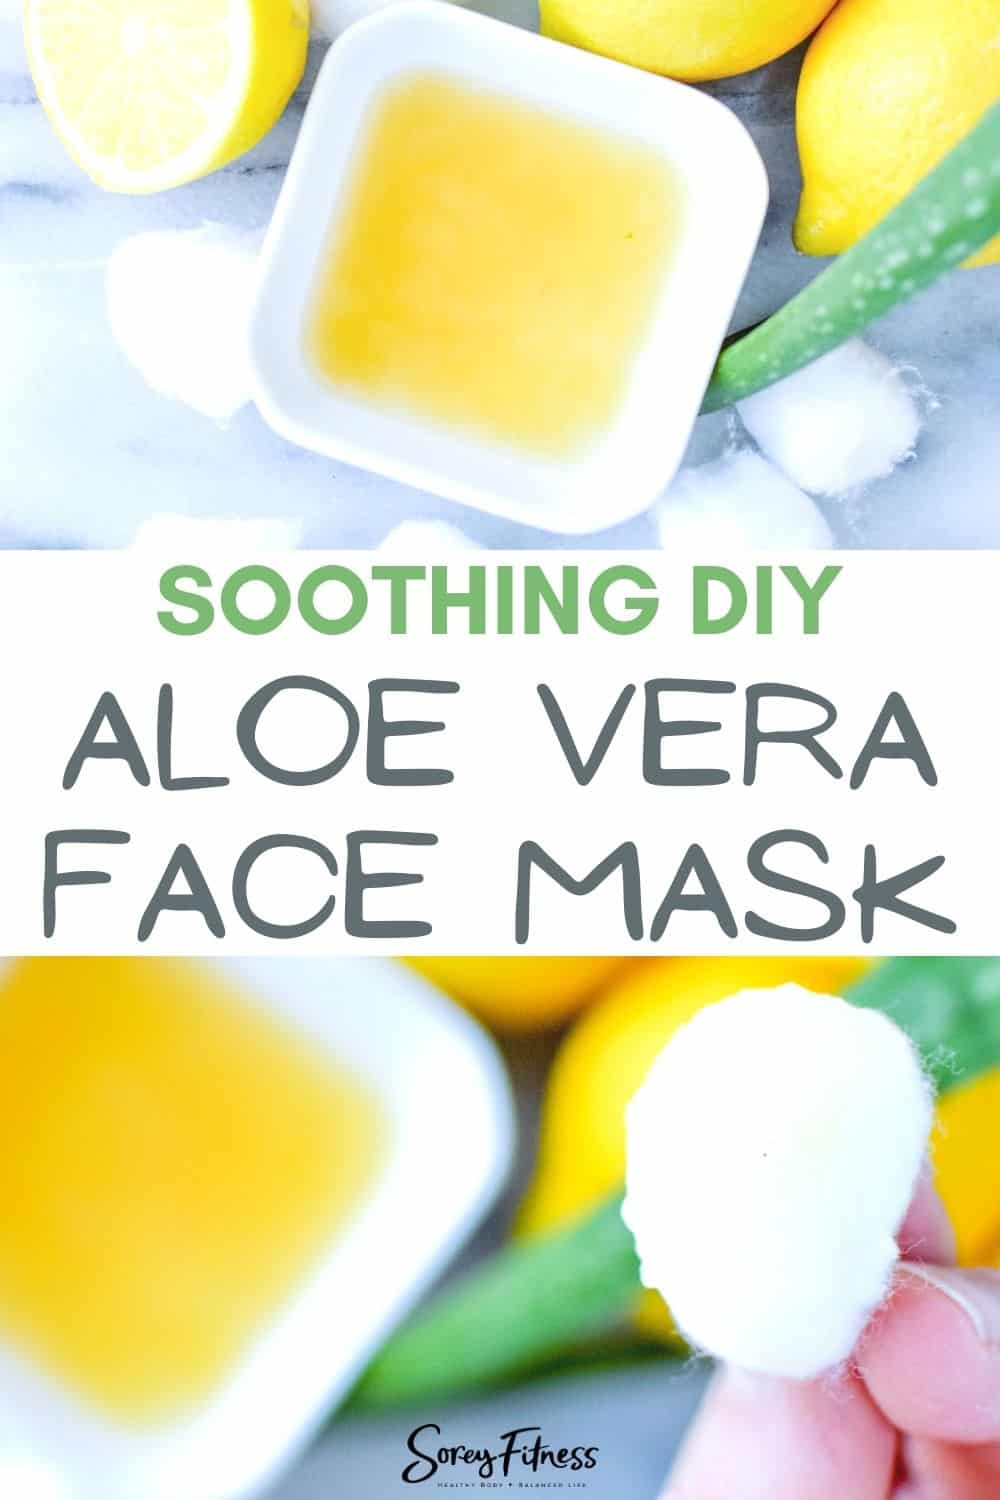 soothing DIY aloe vera face mask in a bowl with a cotton ball